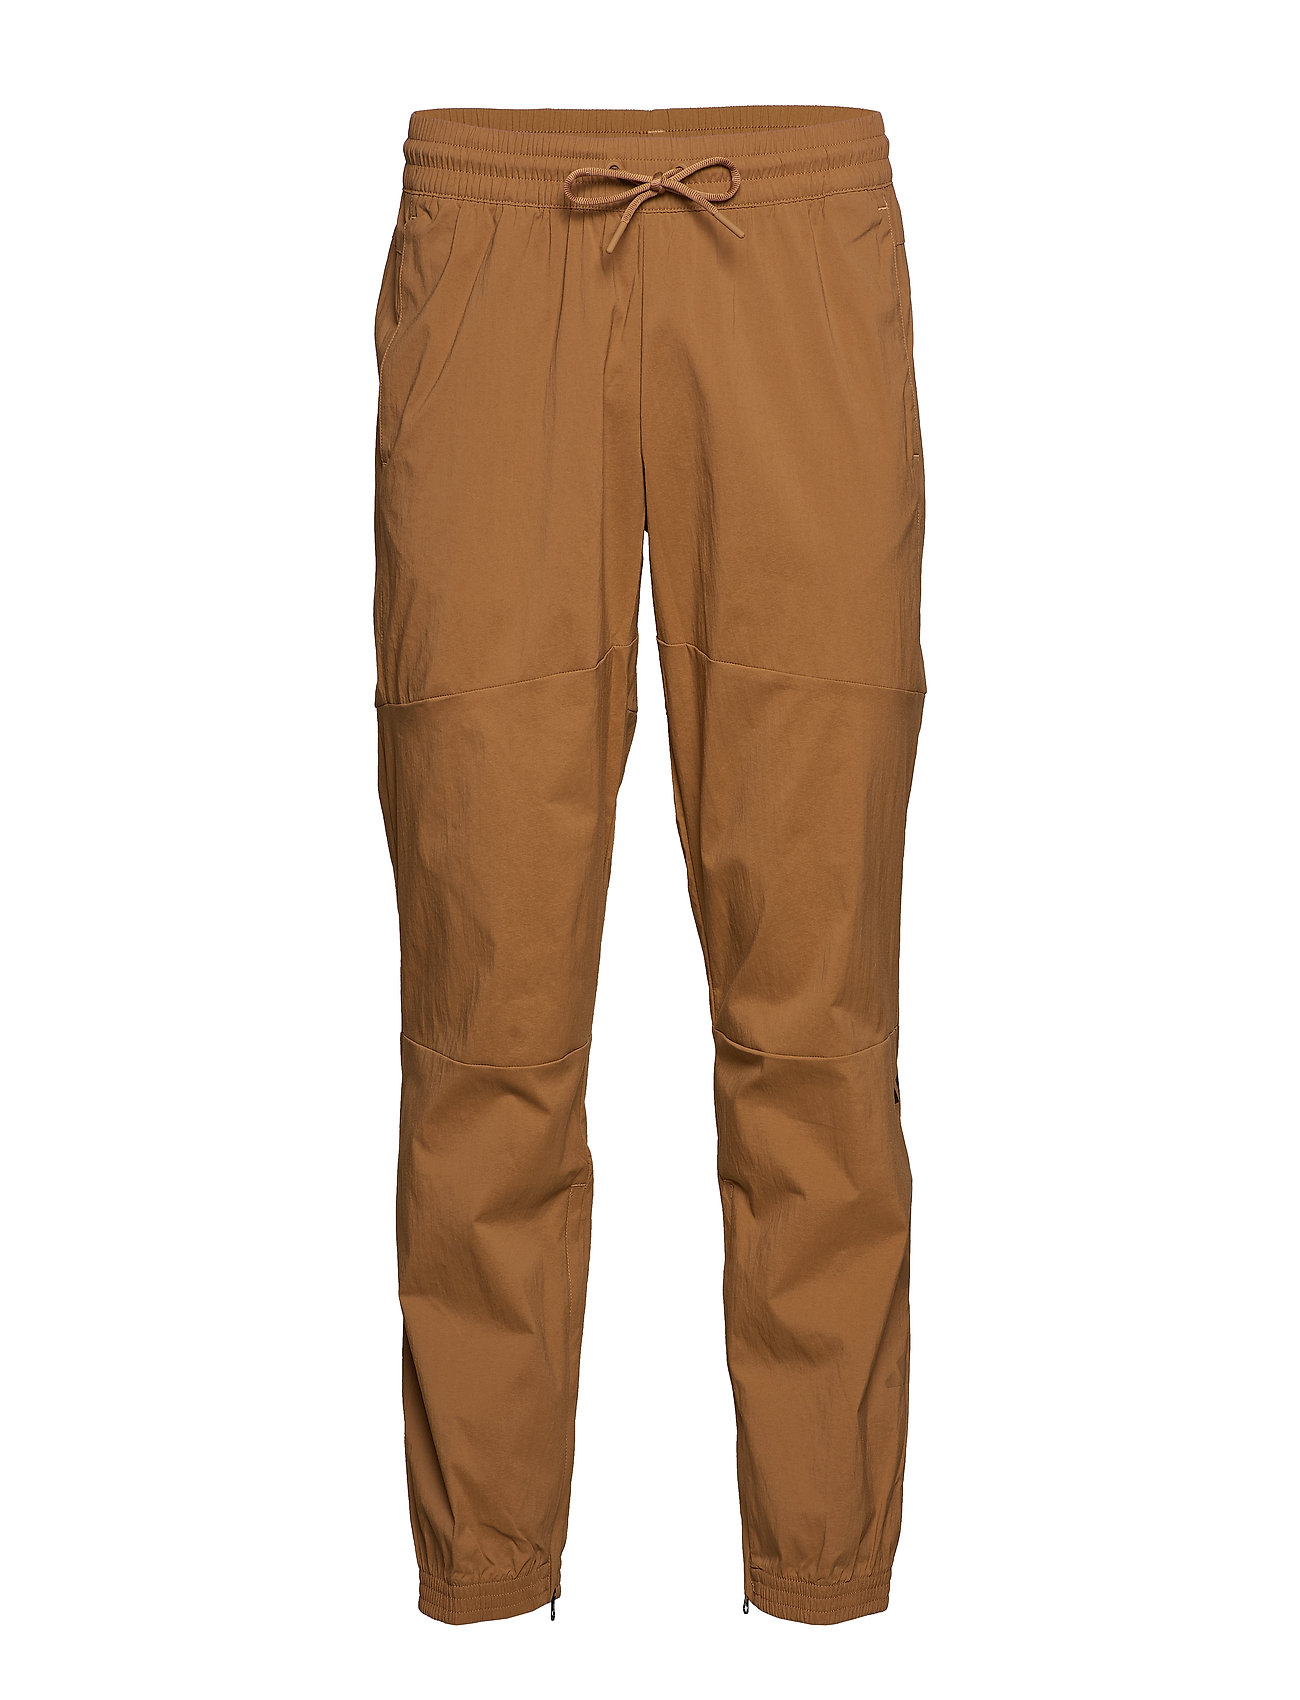 adidas Performance The Pack Pant - RAWDES